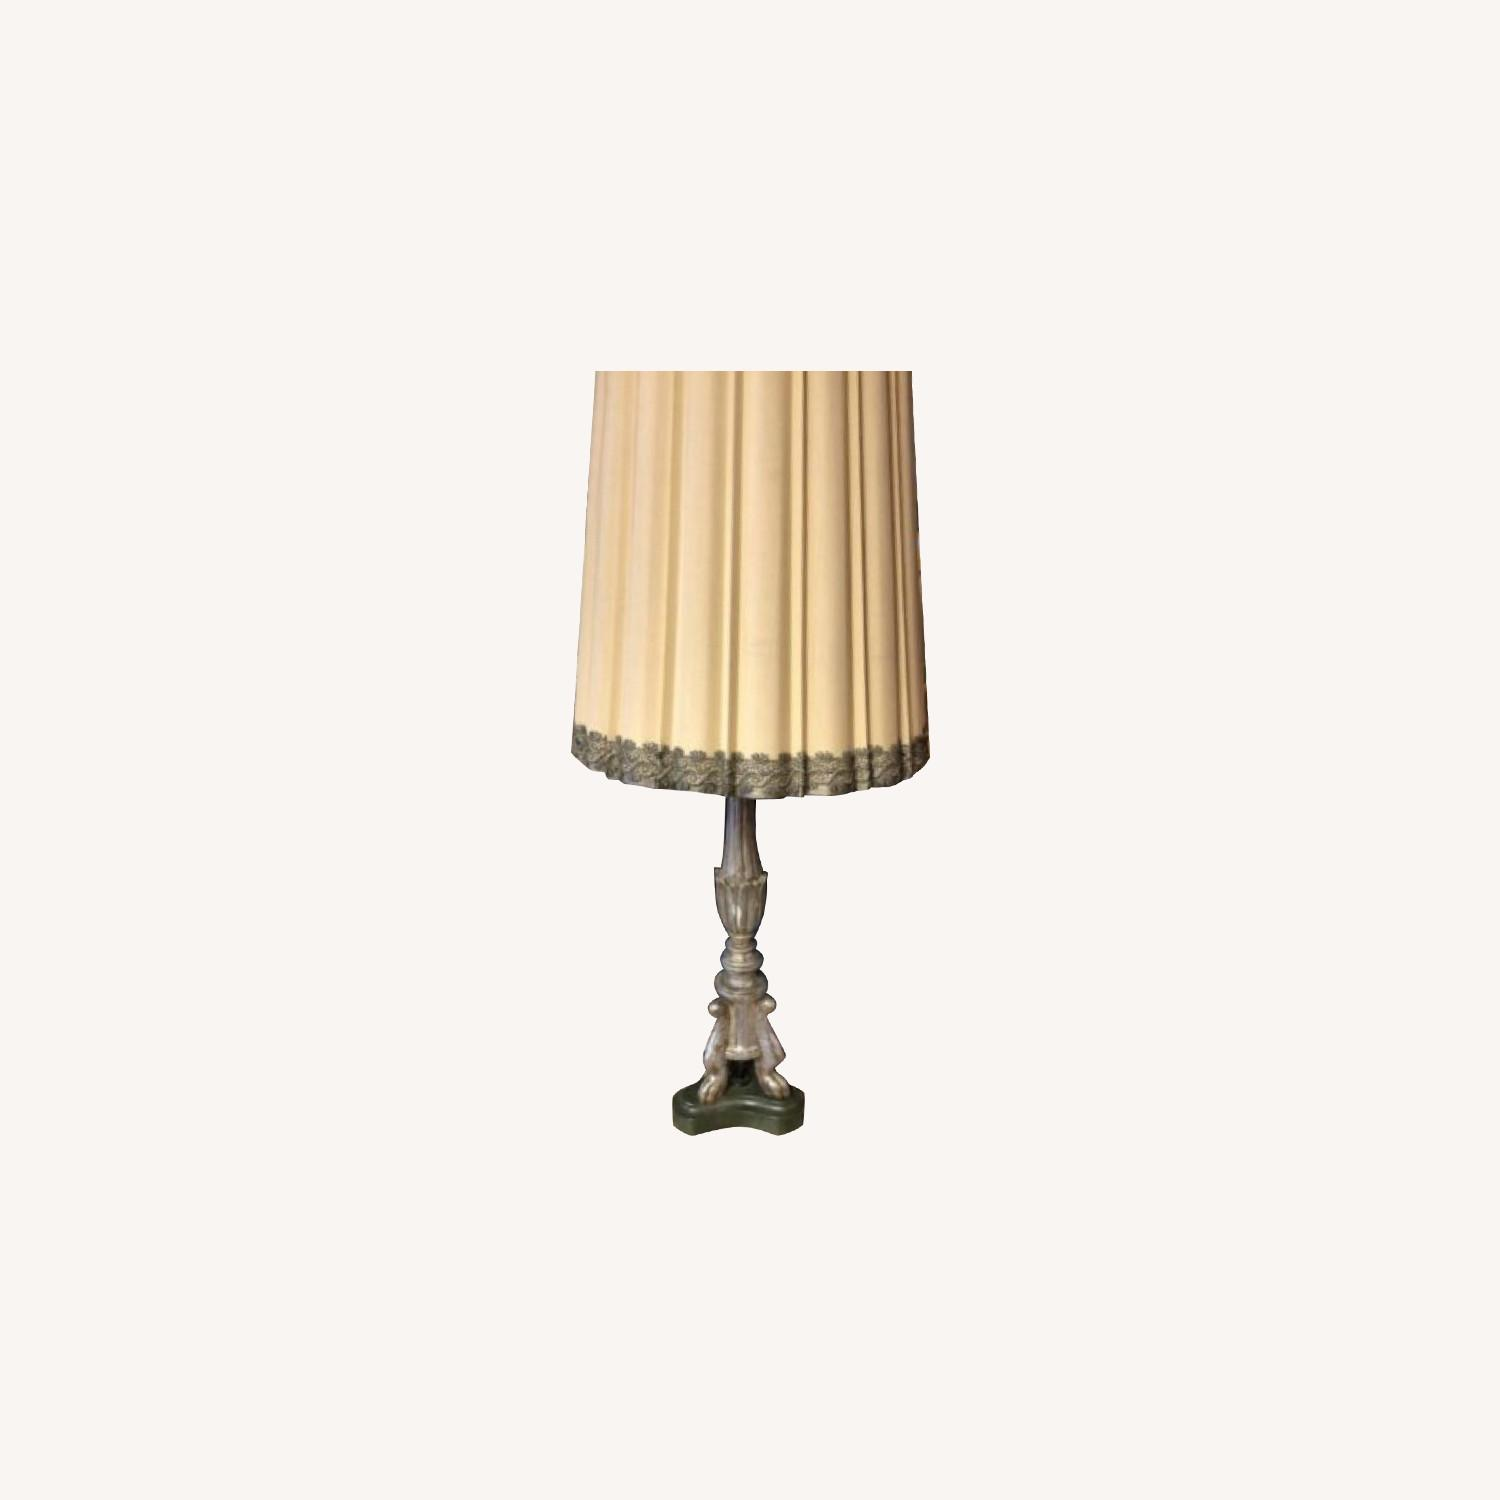 Antique Silver Wooden Lamp - image-0